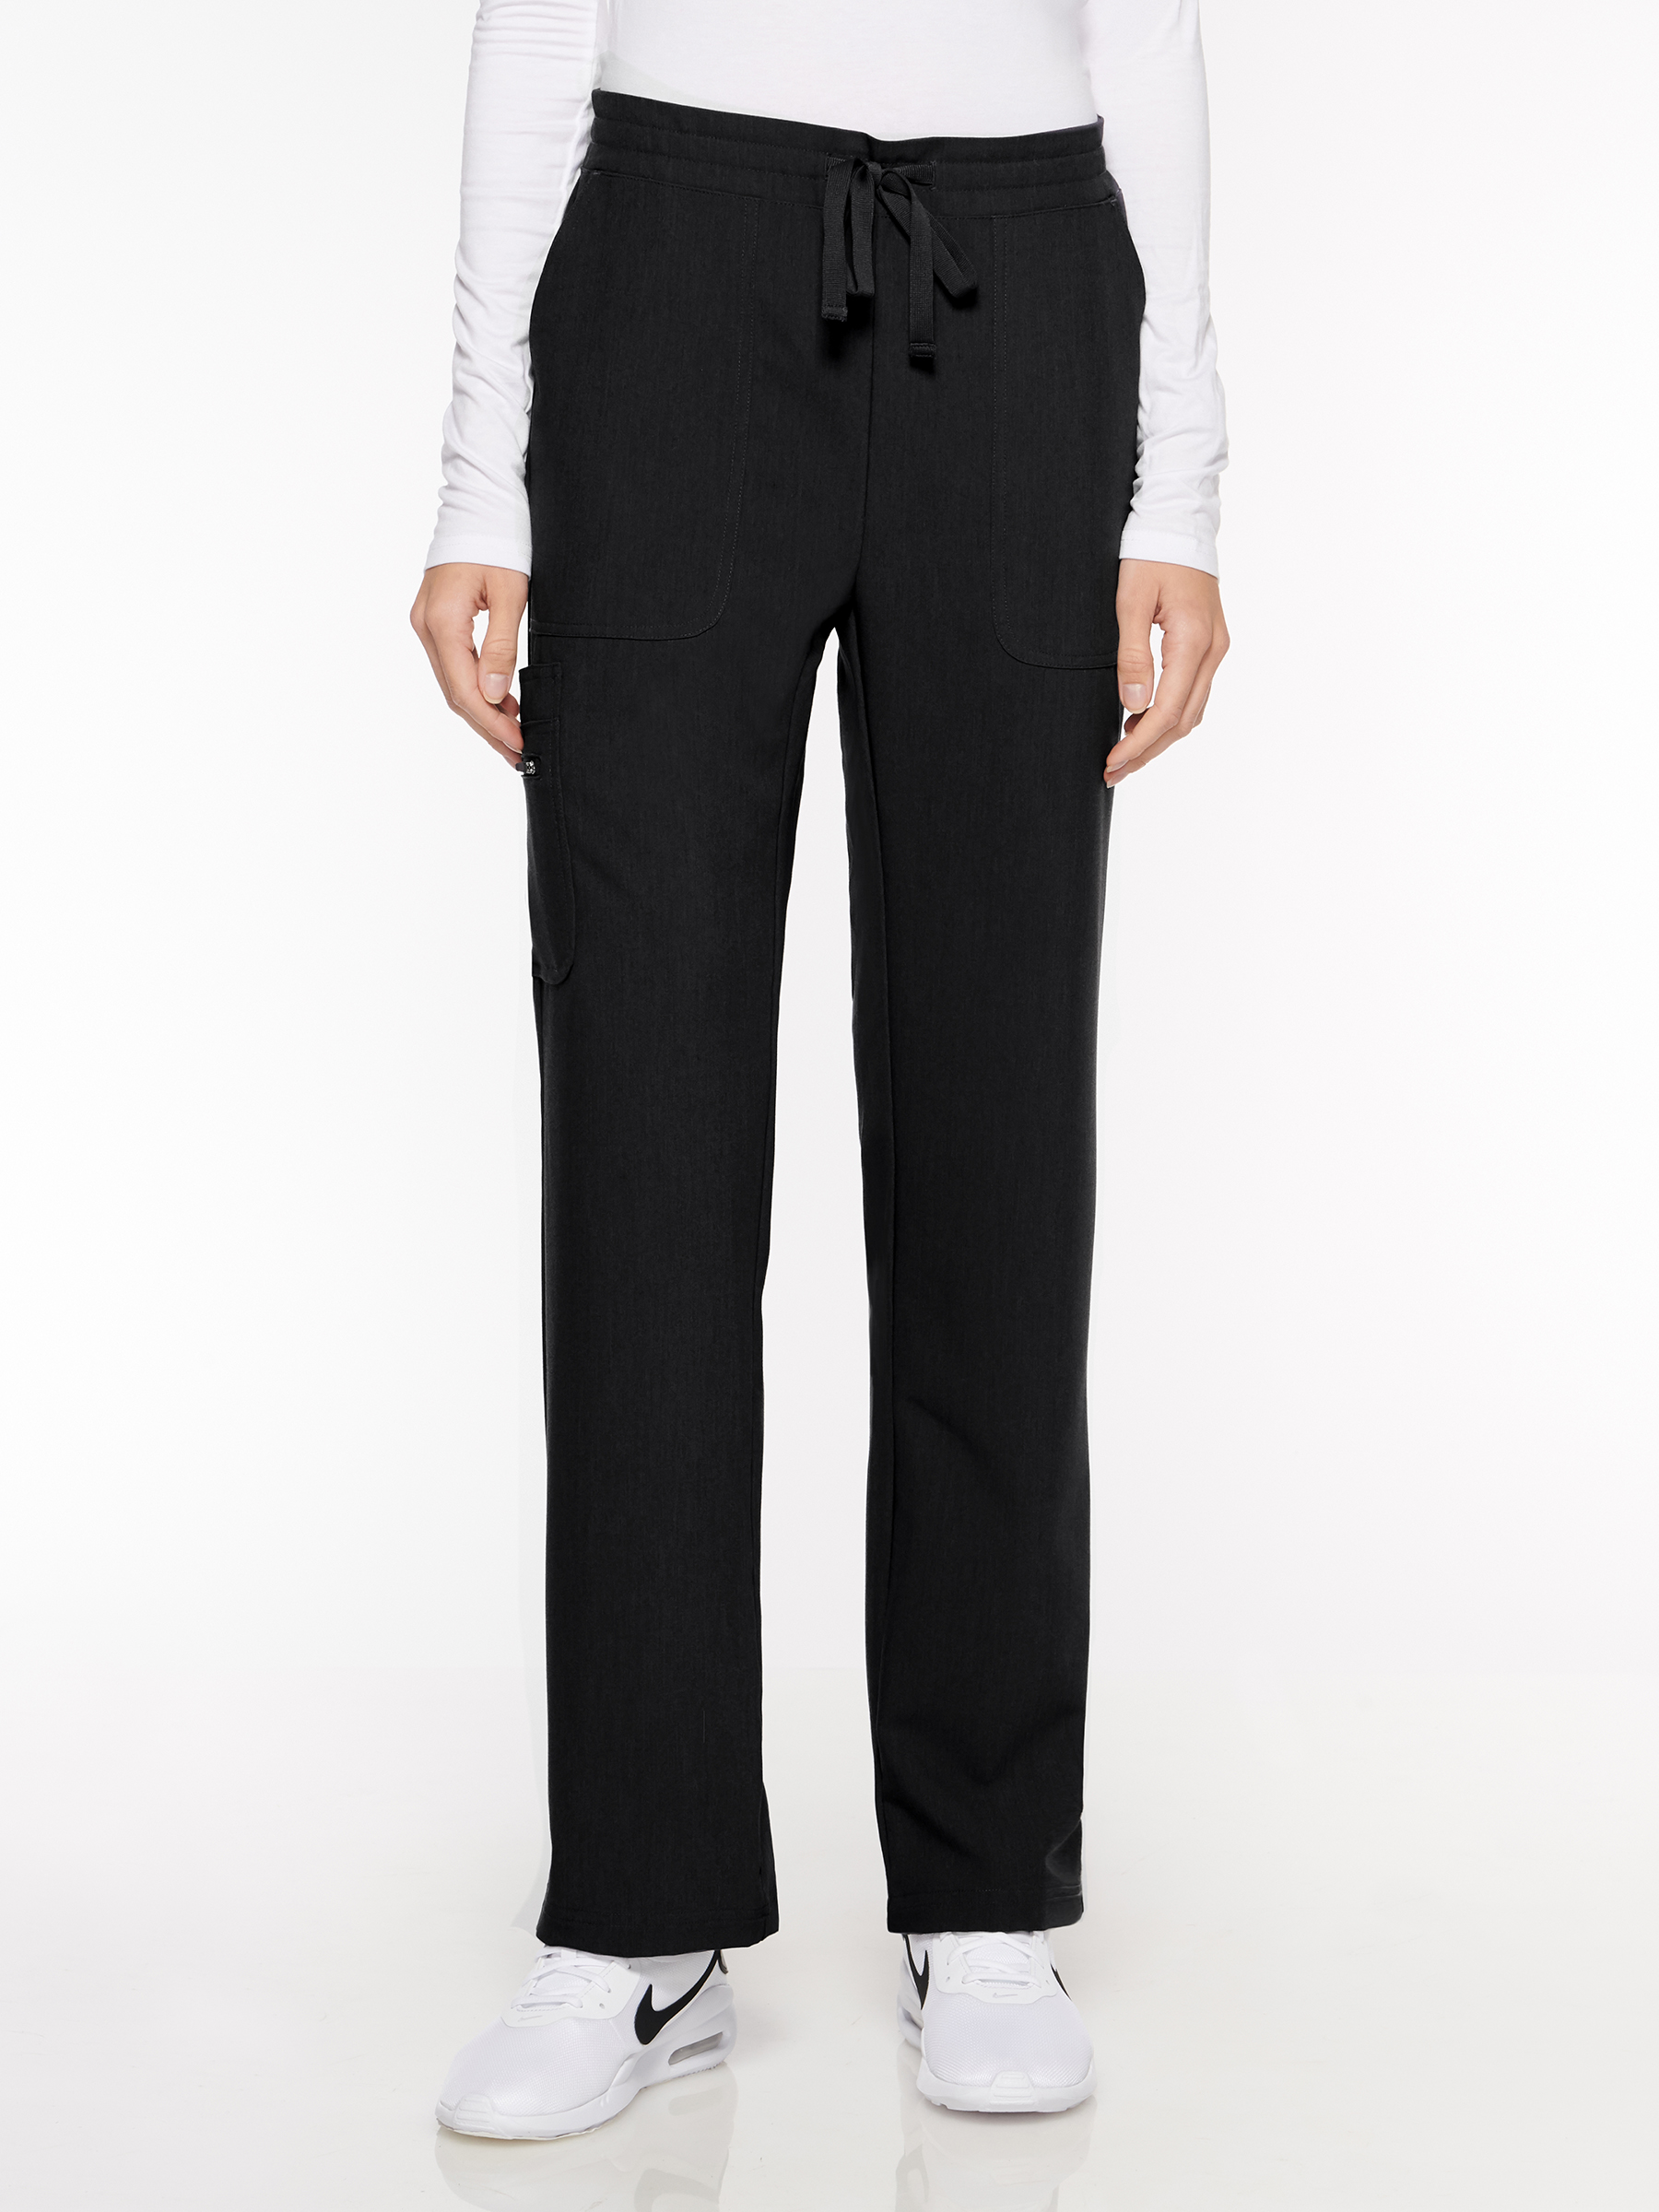 Womens Pant Classic Elastic Pant with 7 Pockets